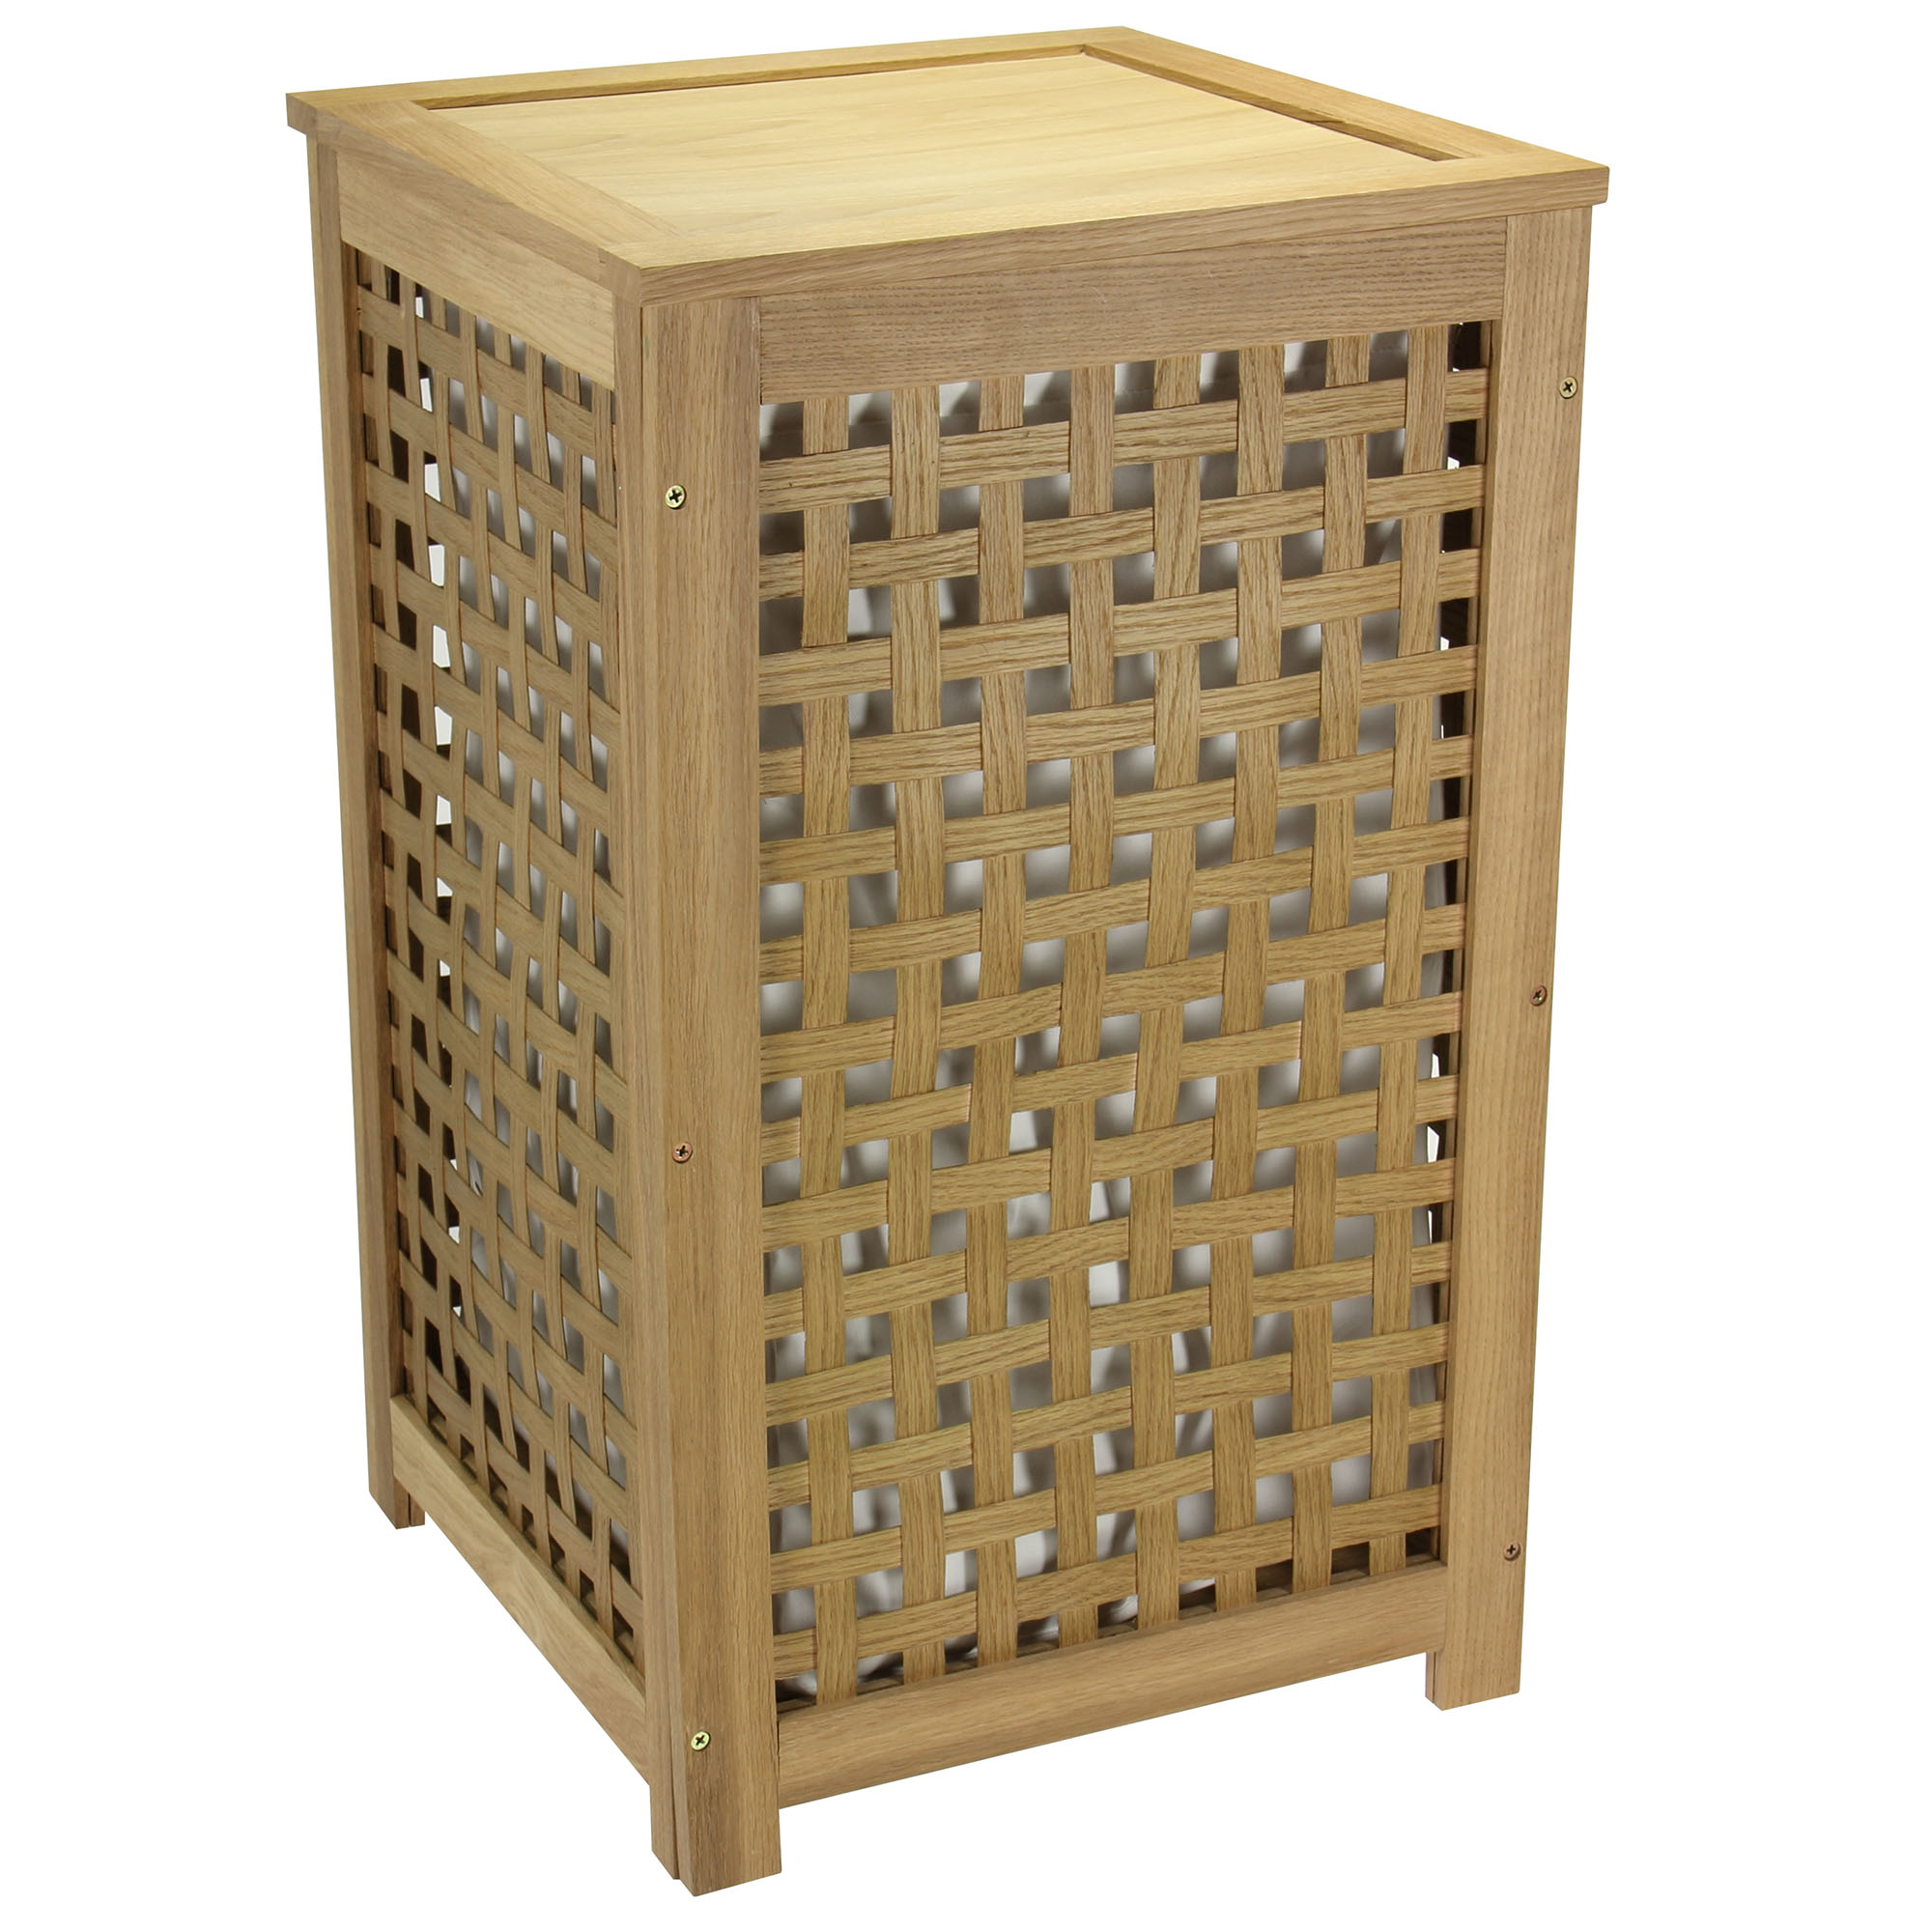 Oak Lattice Hamper with Barnwood Finish